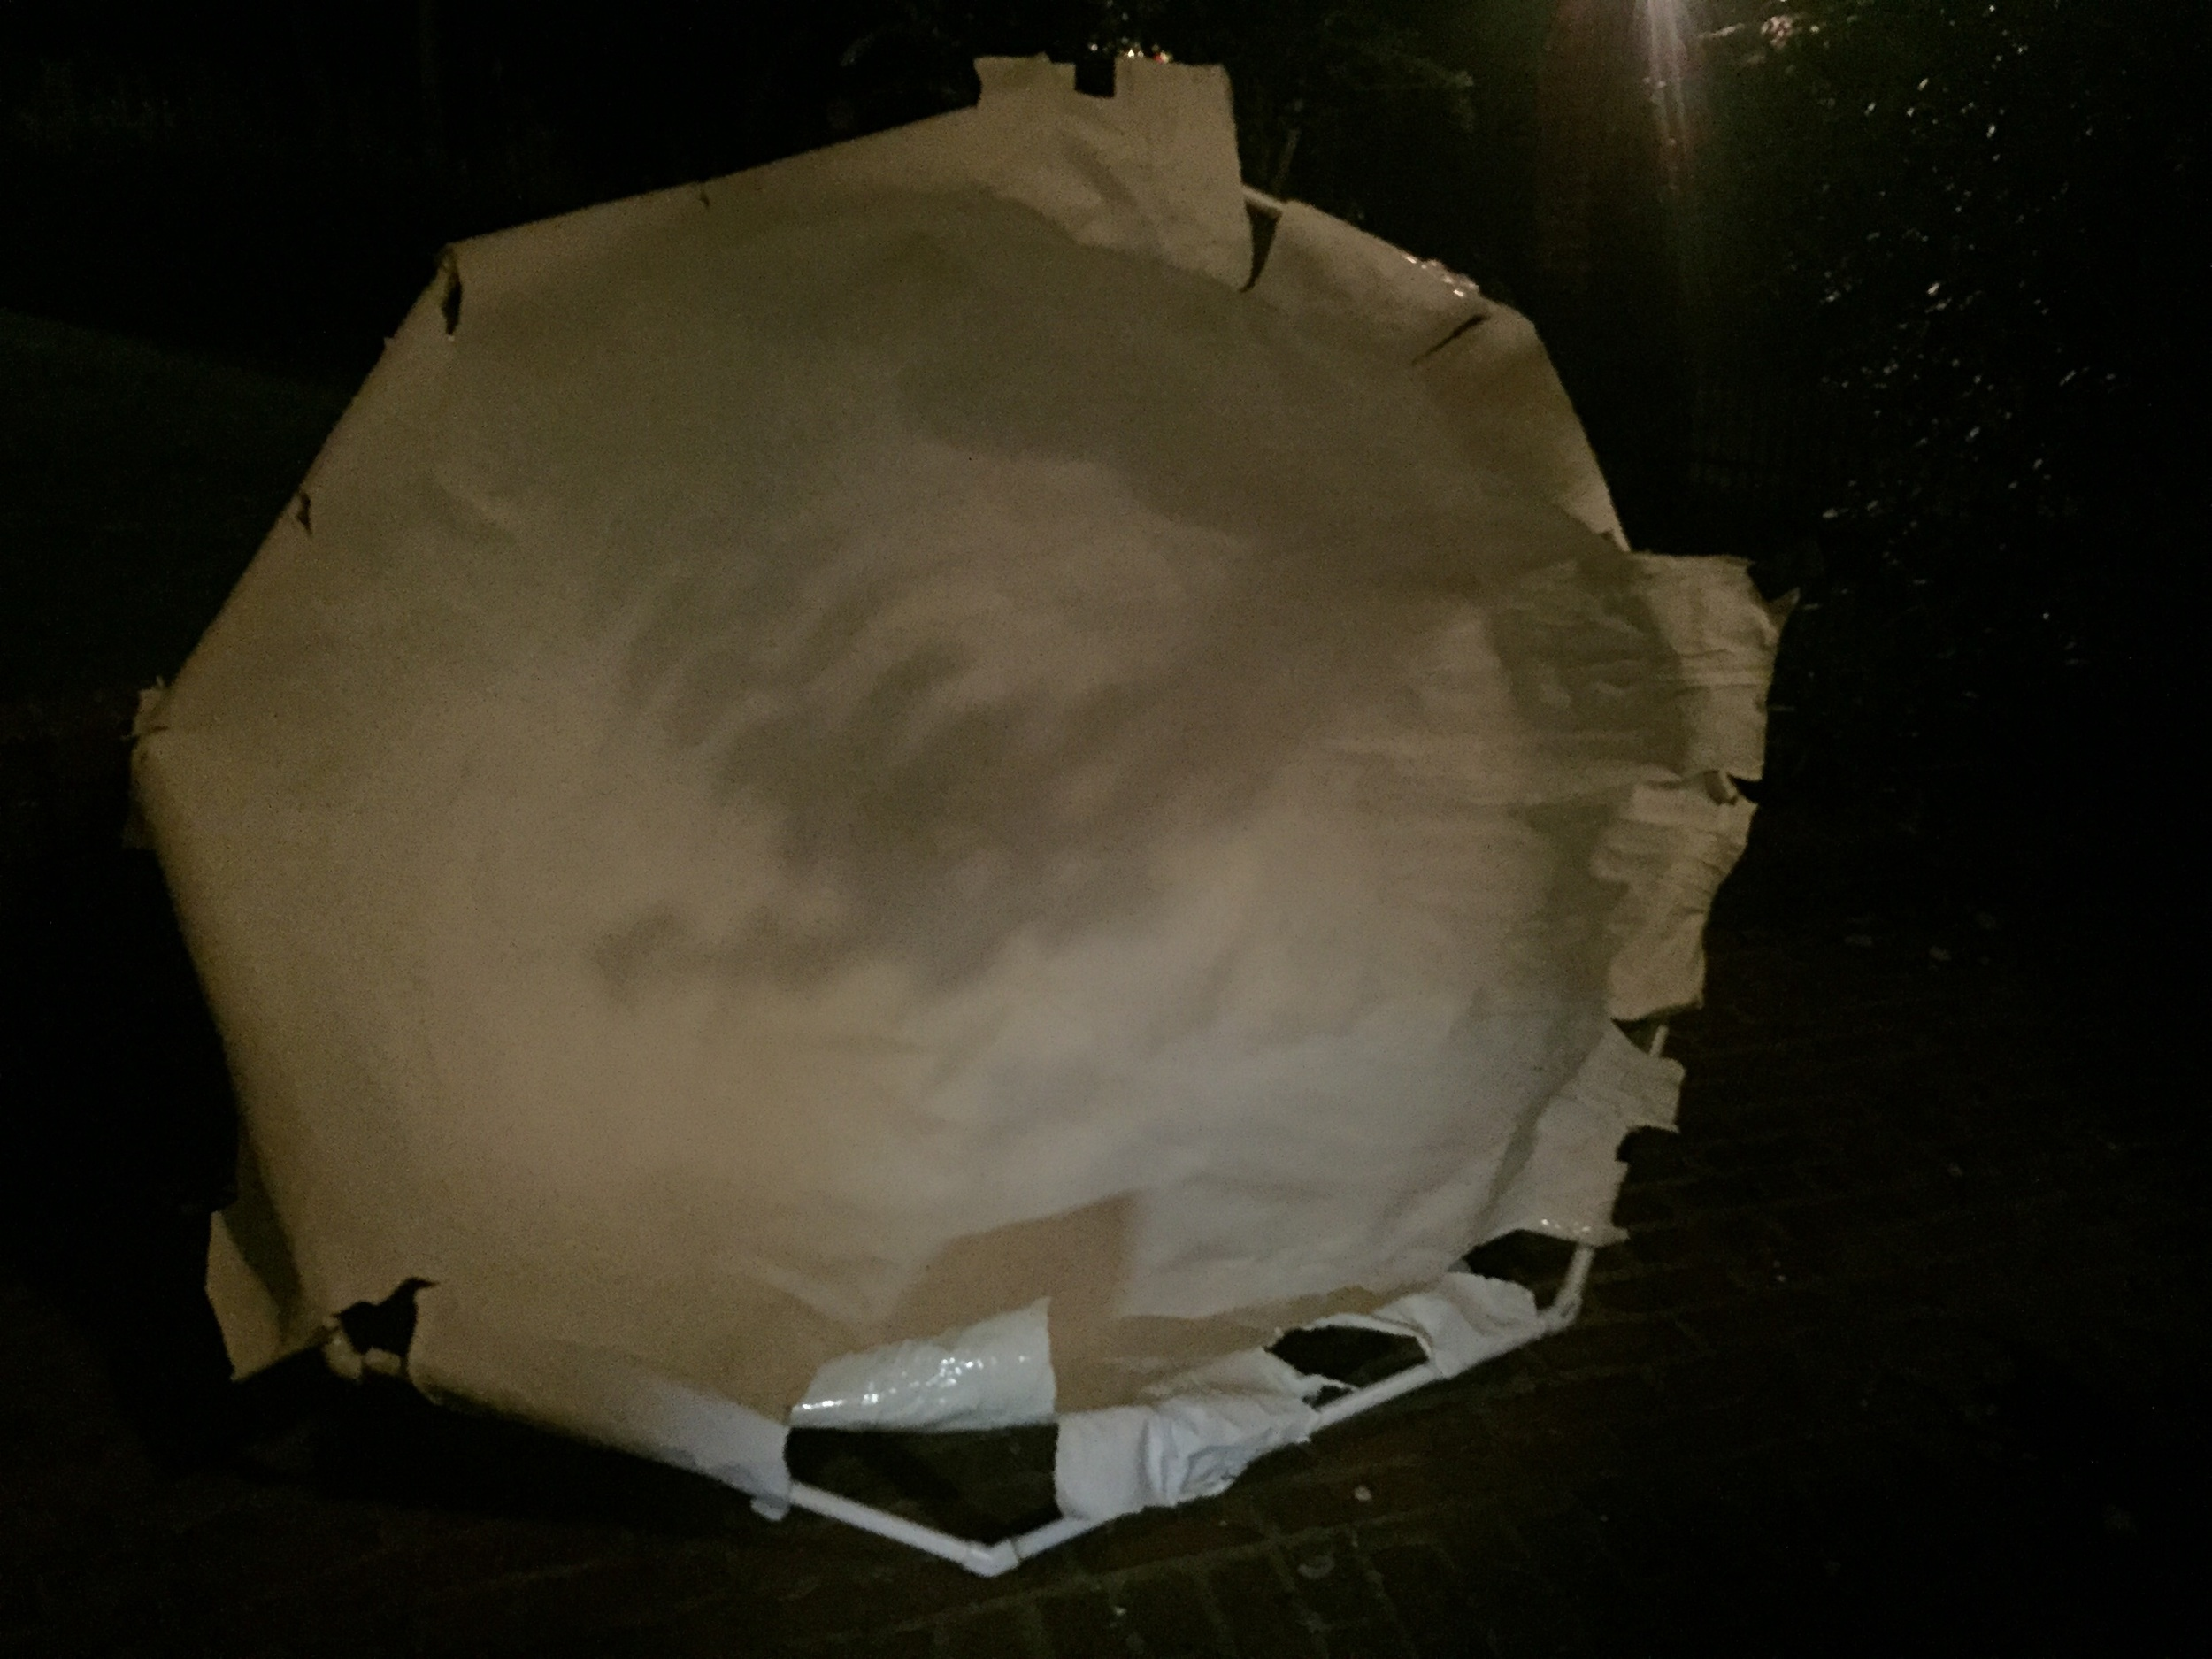 I tried attaching the StyroSpray dome to a PVC frame, just to experiment with. The biggest problem is, the danged smell of the stuff lingered for over a week, it was too strong to bring inside The once perfect interior of the bubble did get weathered and wrinkled.